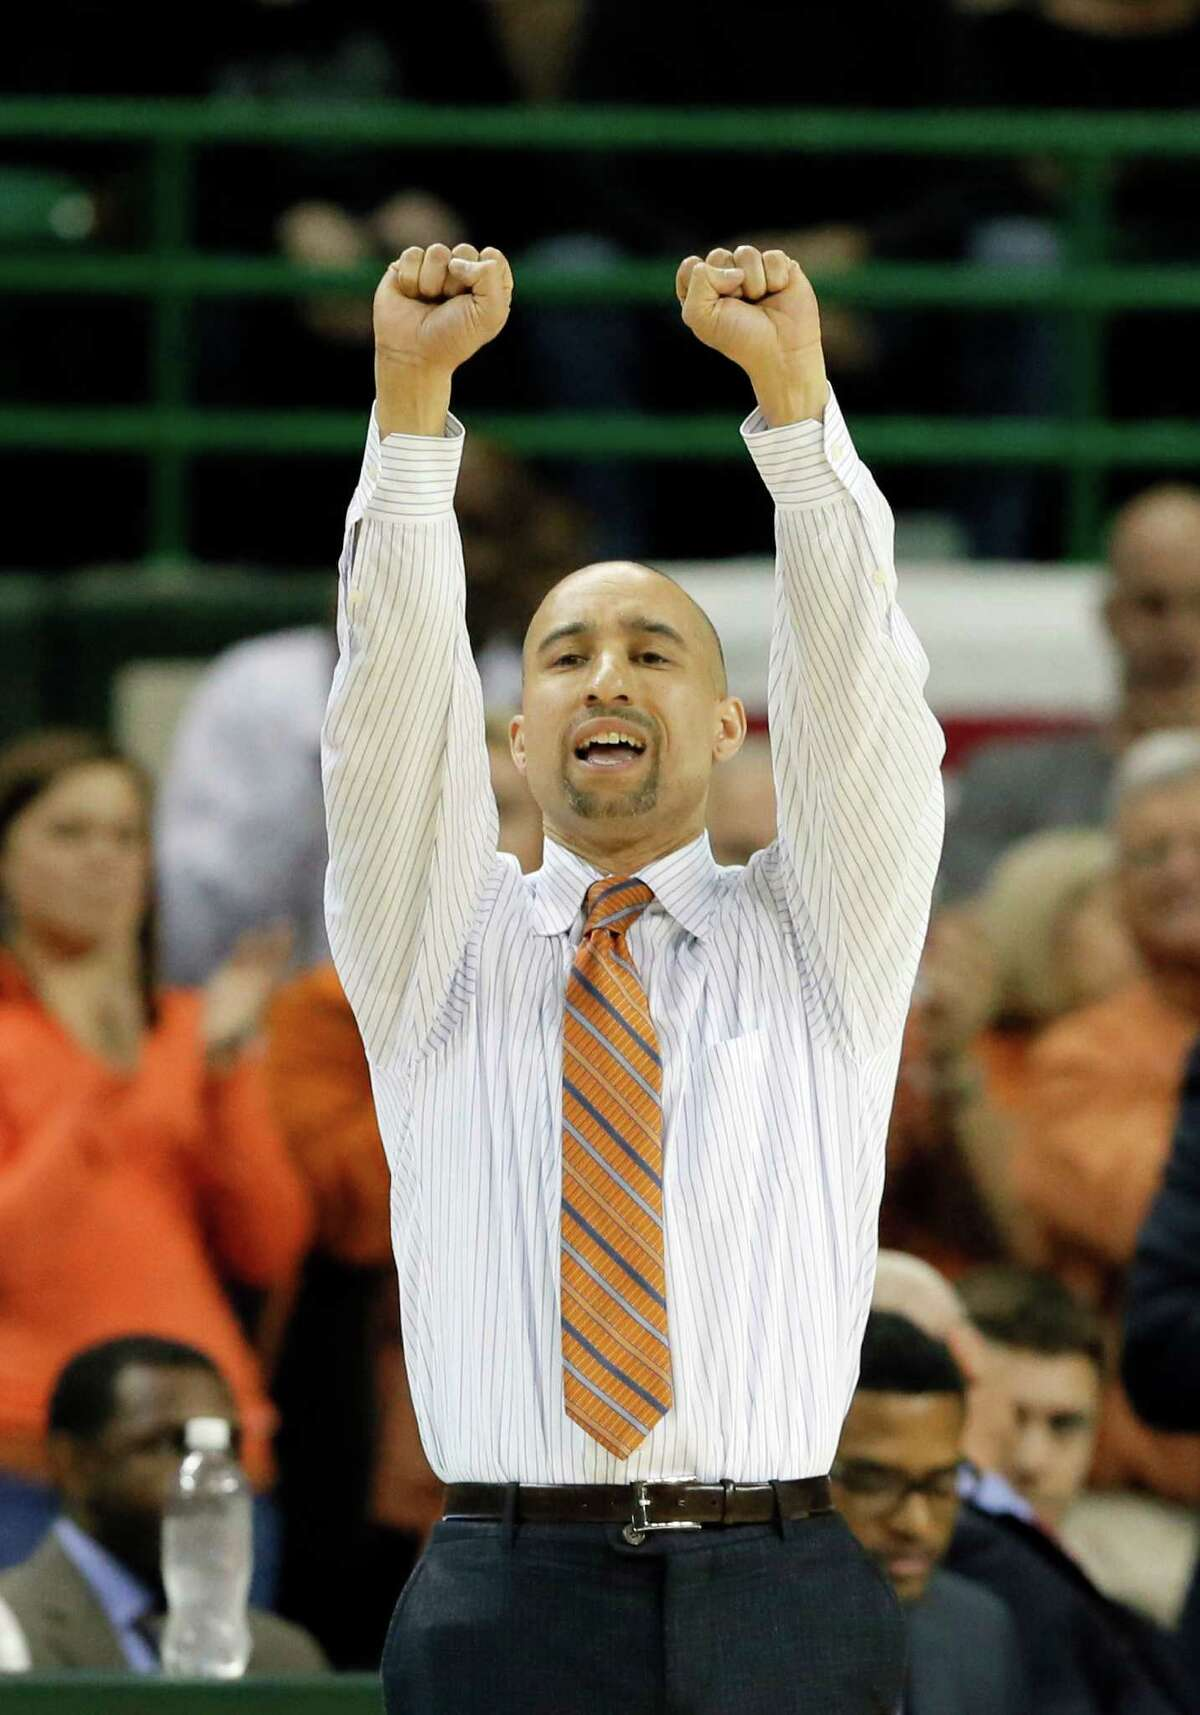 Texas head coach Shaka Smart instructs his team on offensive in the first half of an NCAA college basketball game against Baylor on Monday, Feb. 1, 2016, in Waco, Texas. (AP Photo/Tony Gutierrez)